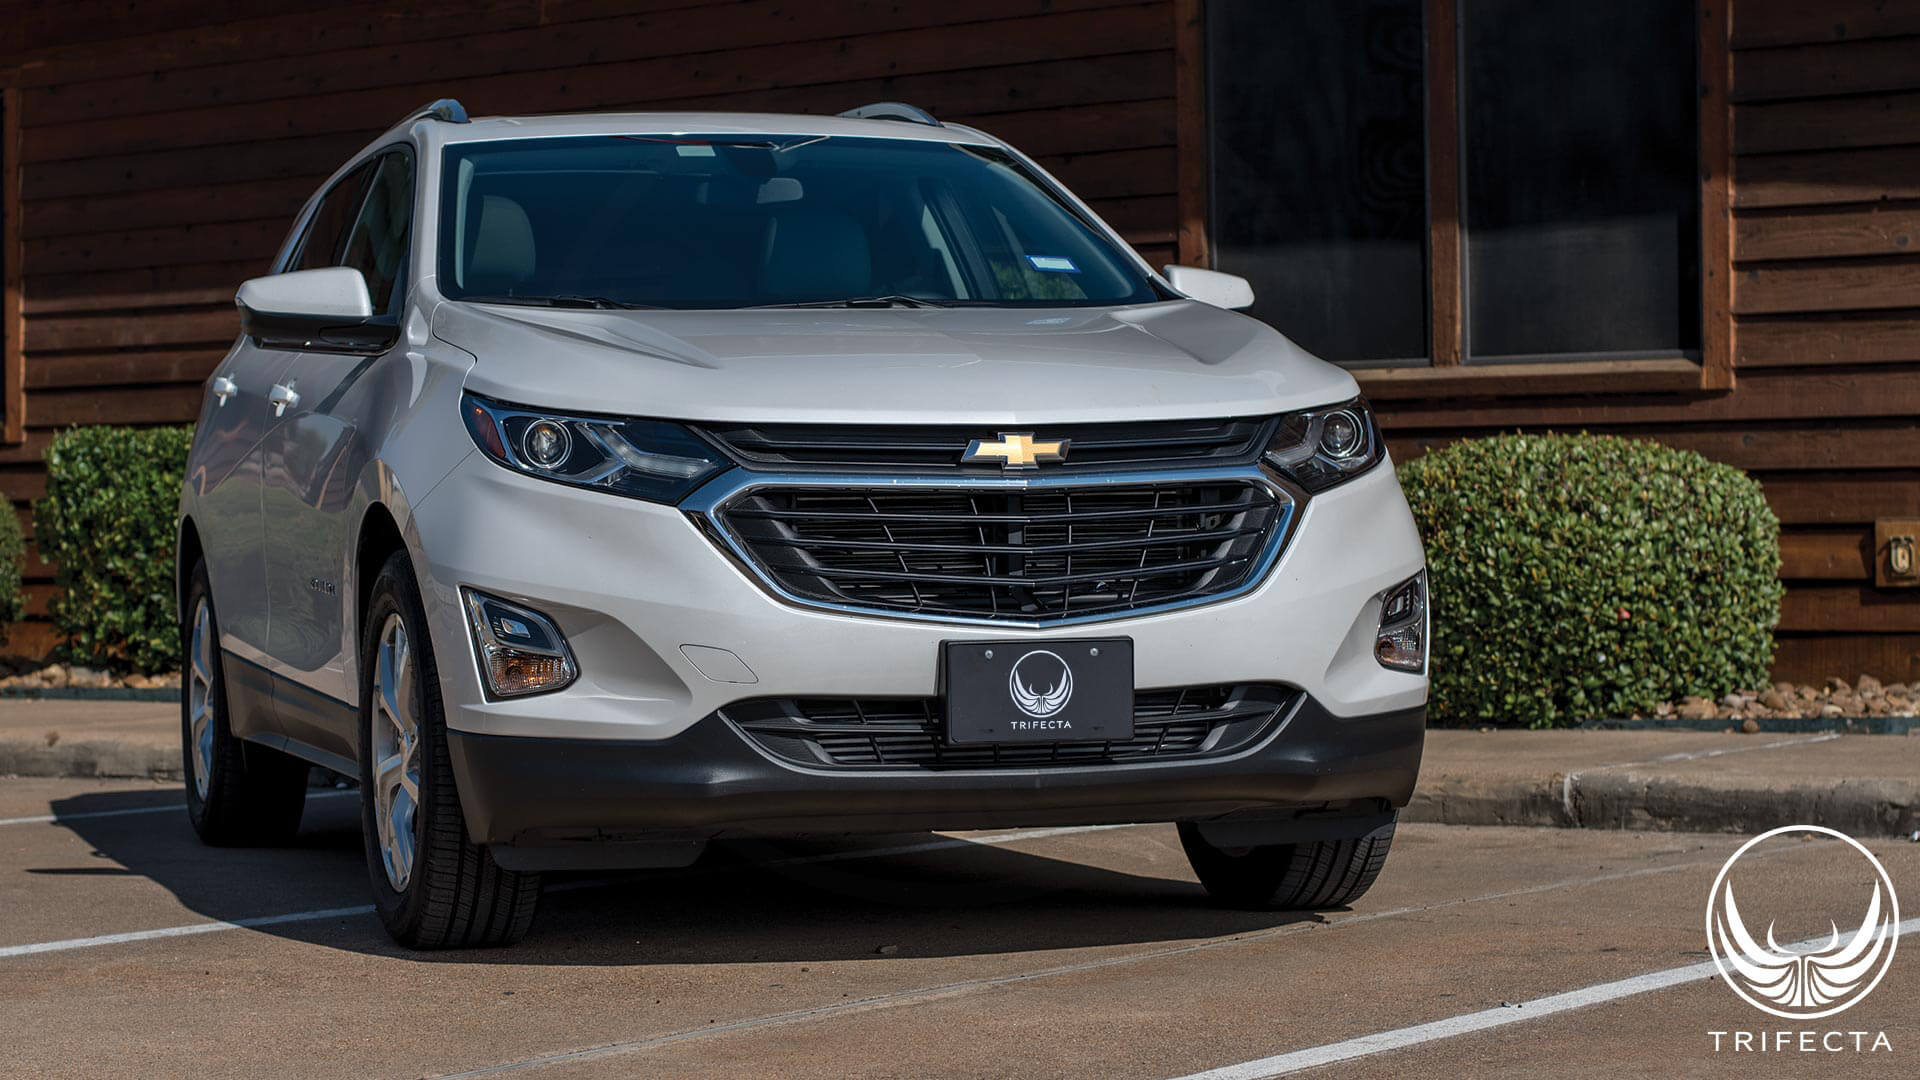 Product Review: 2018--2019 Chevrolet Equinox - 2.0L Turbo - Advantage